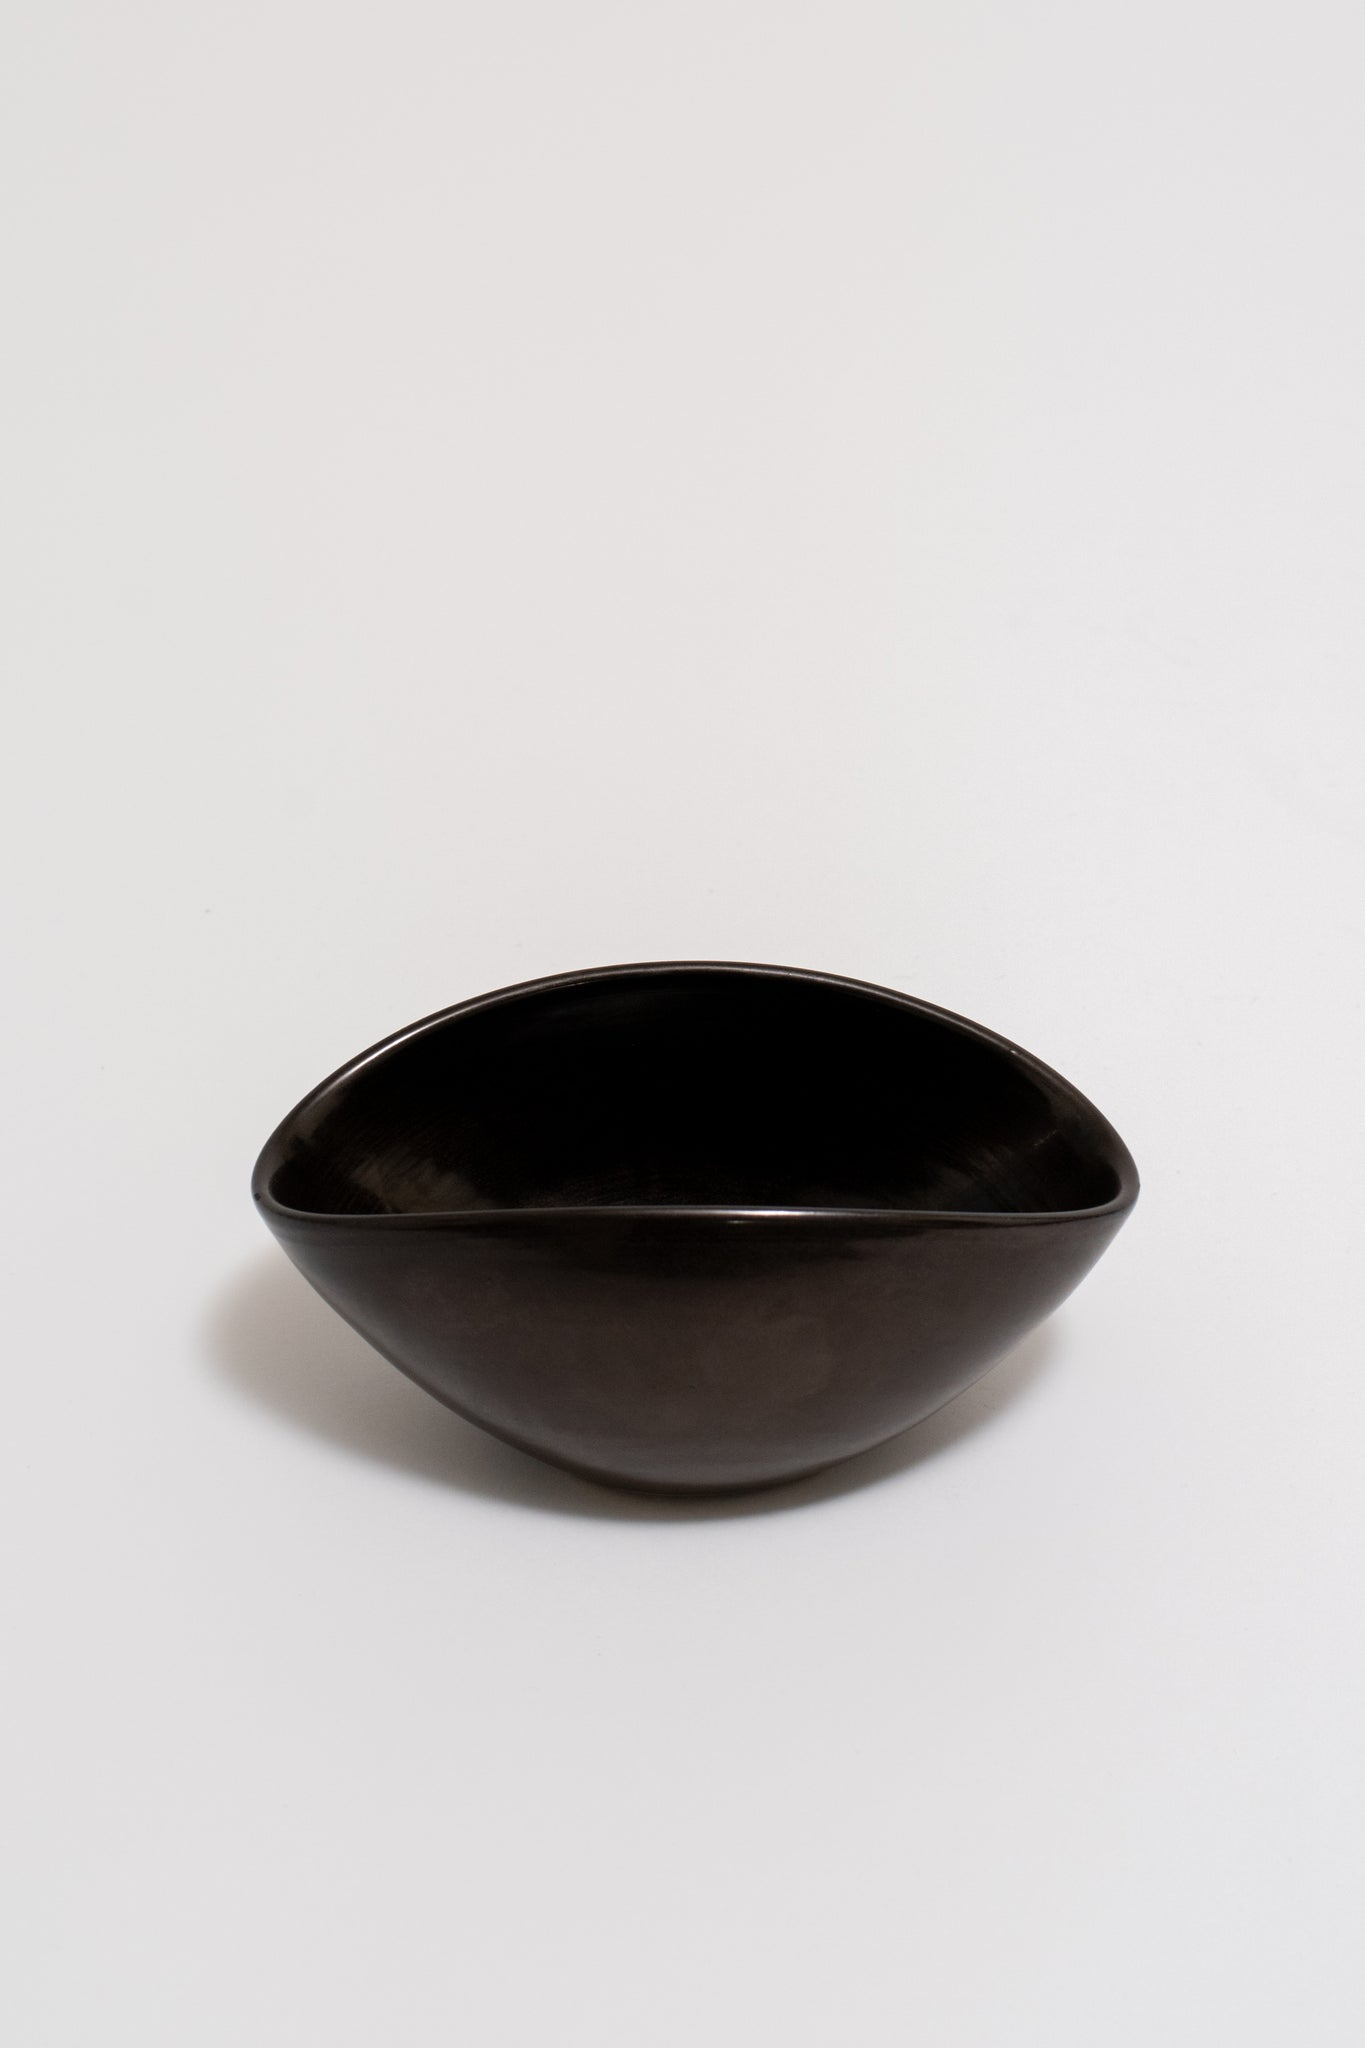 CERAMIC BOWL FOR ATELIER MADOURA. SUZANNE RAMIE, C. 1950